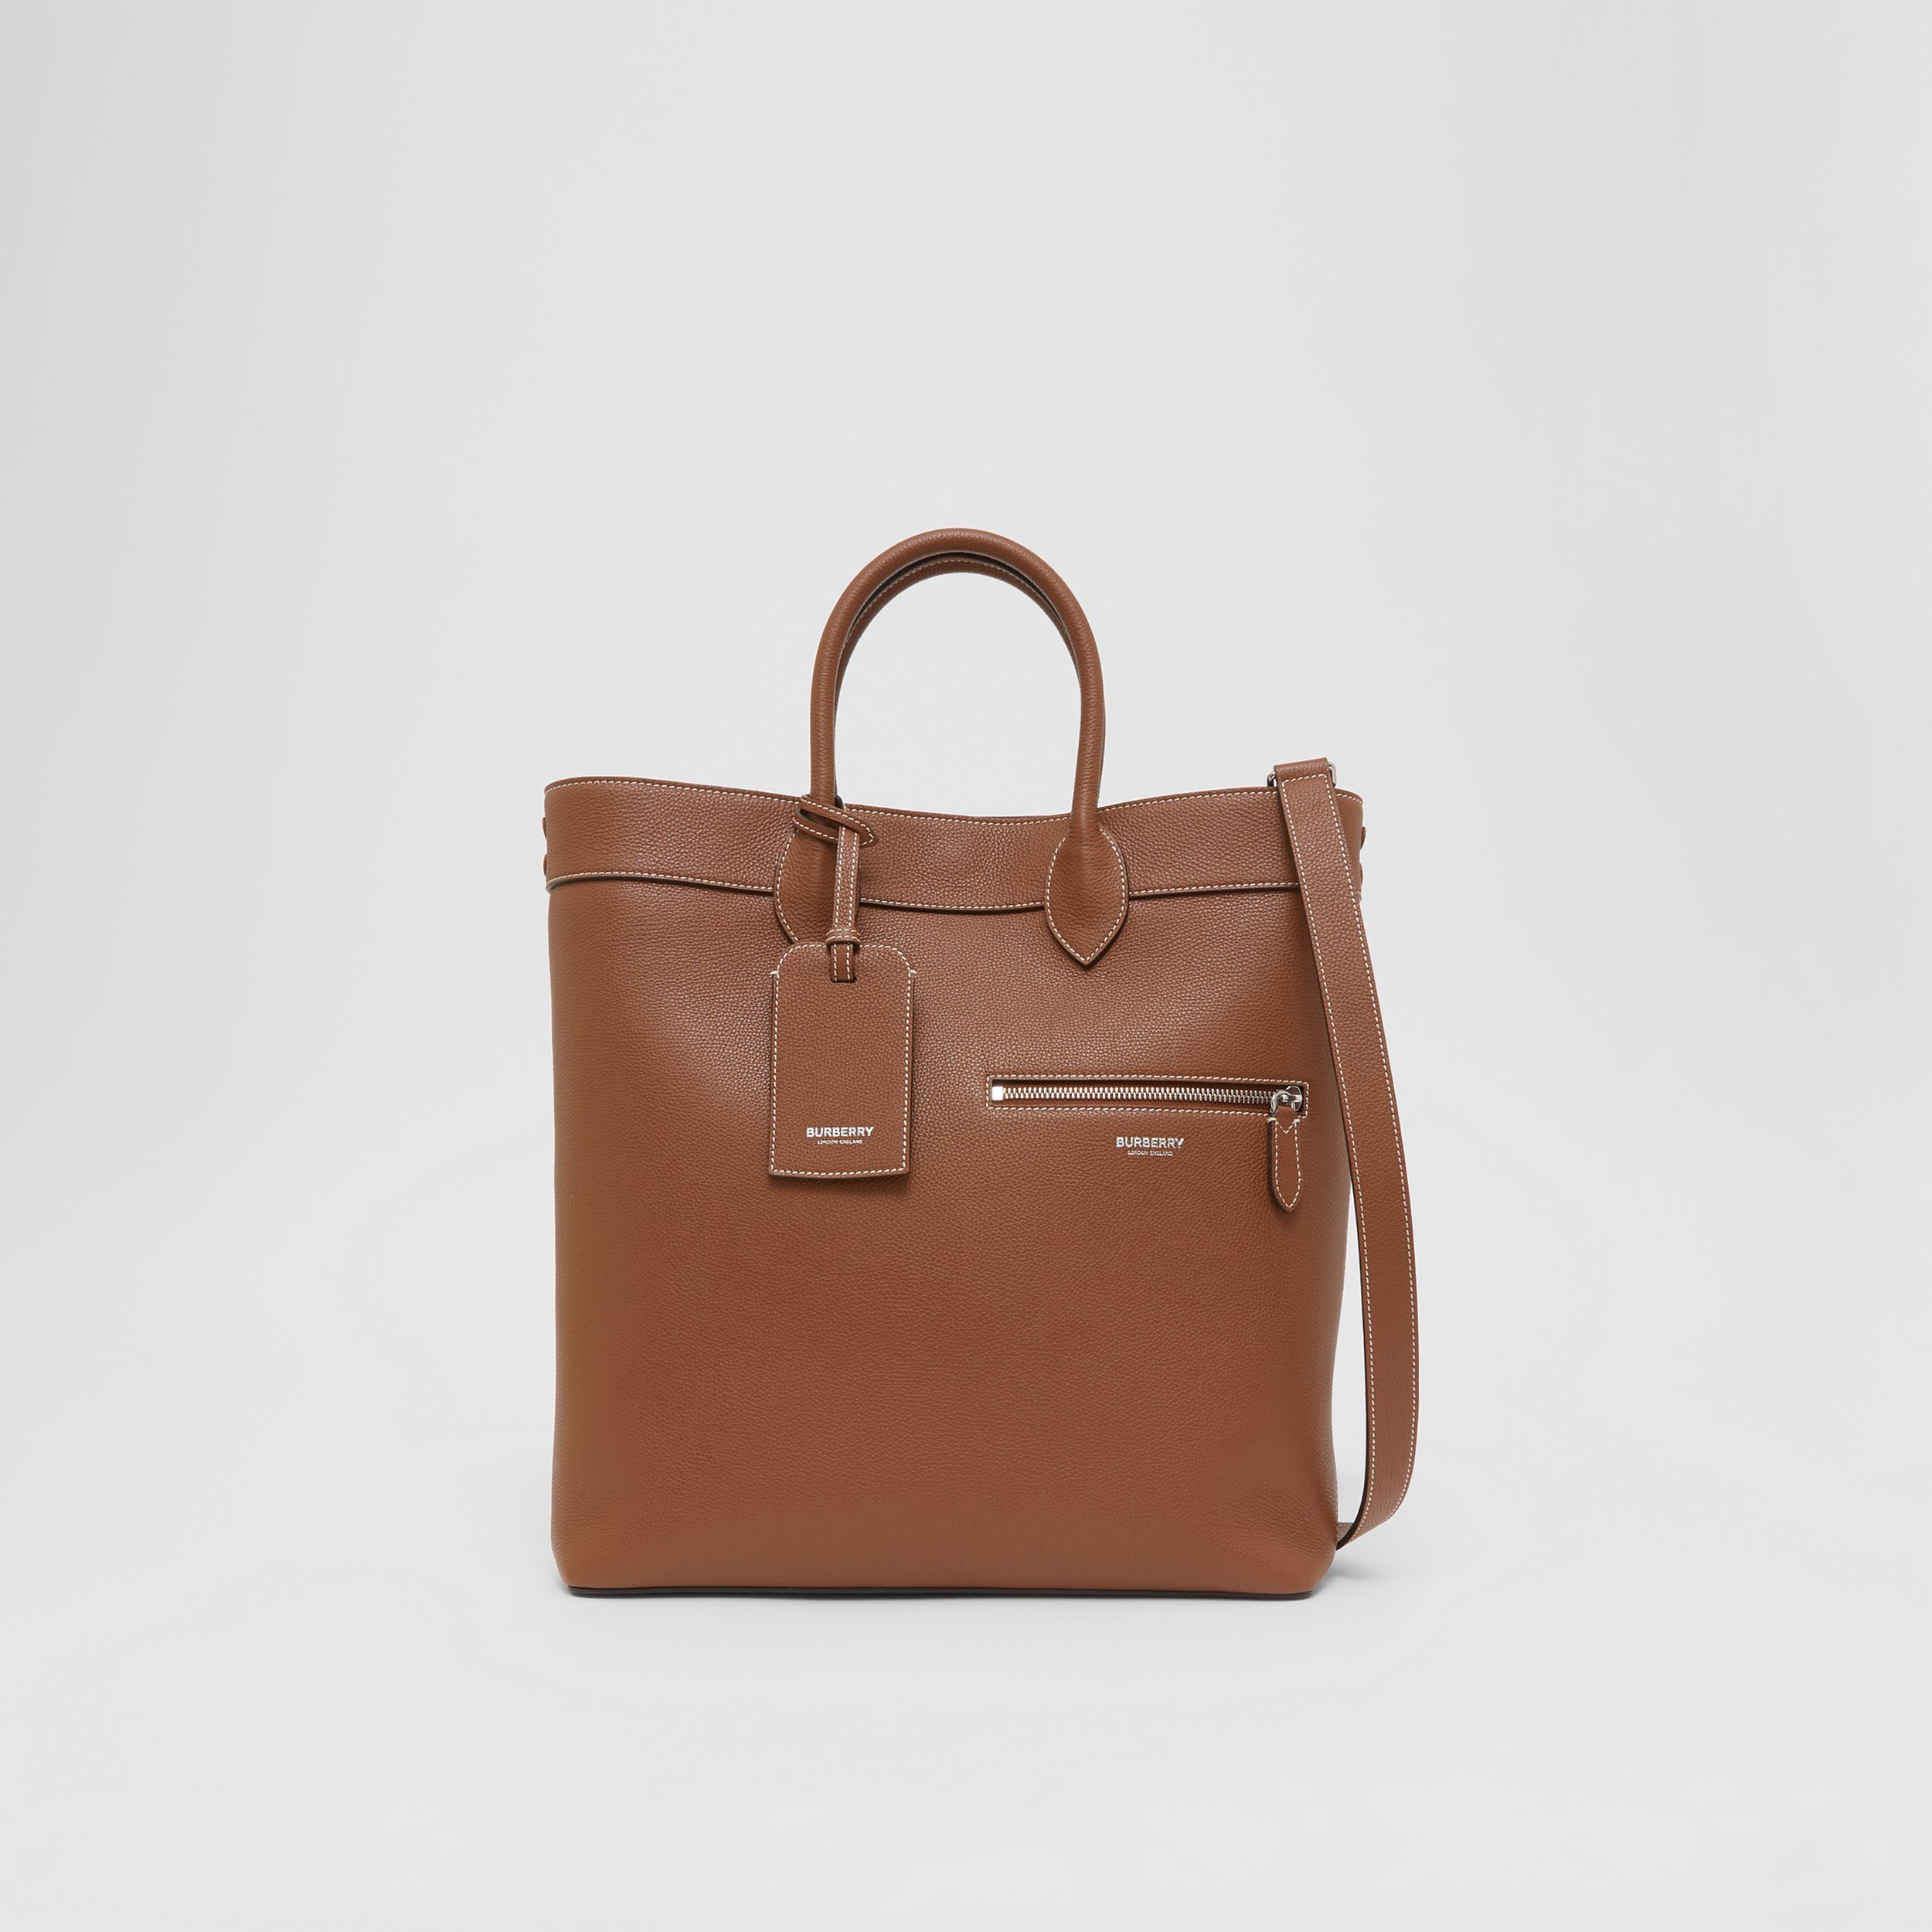 Grainy Leather Tote in Tan | Burberry - 1